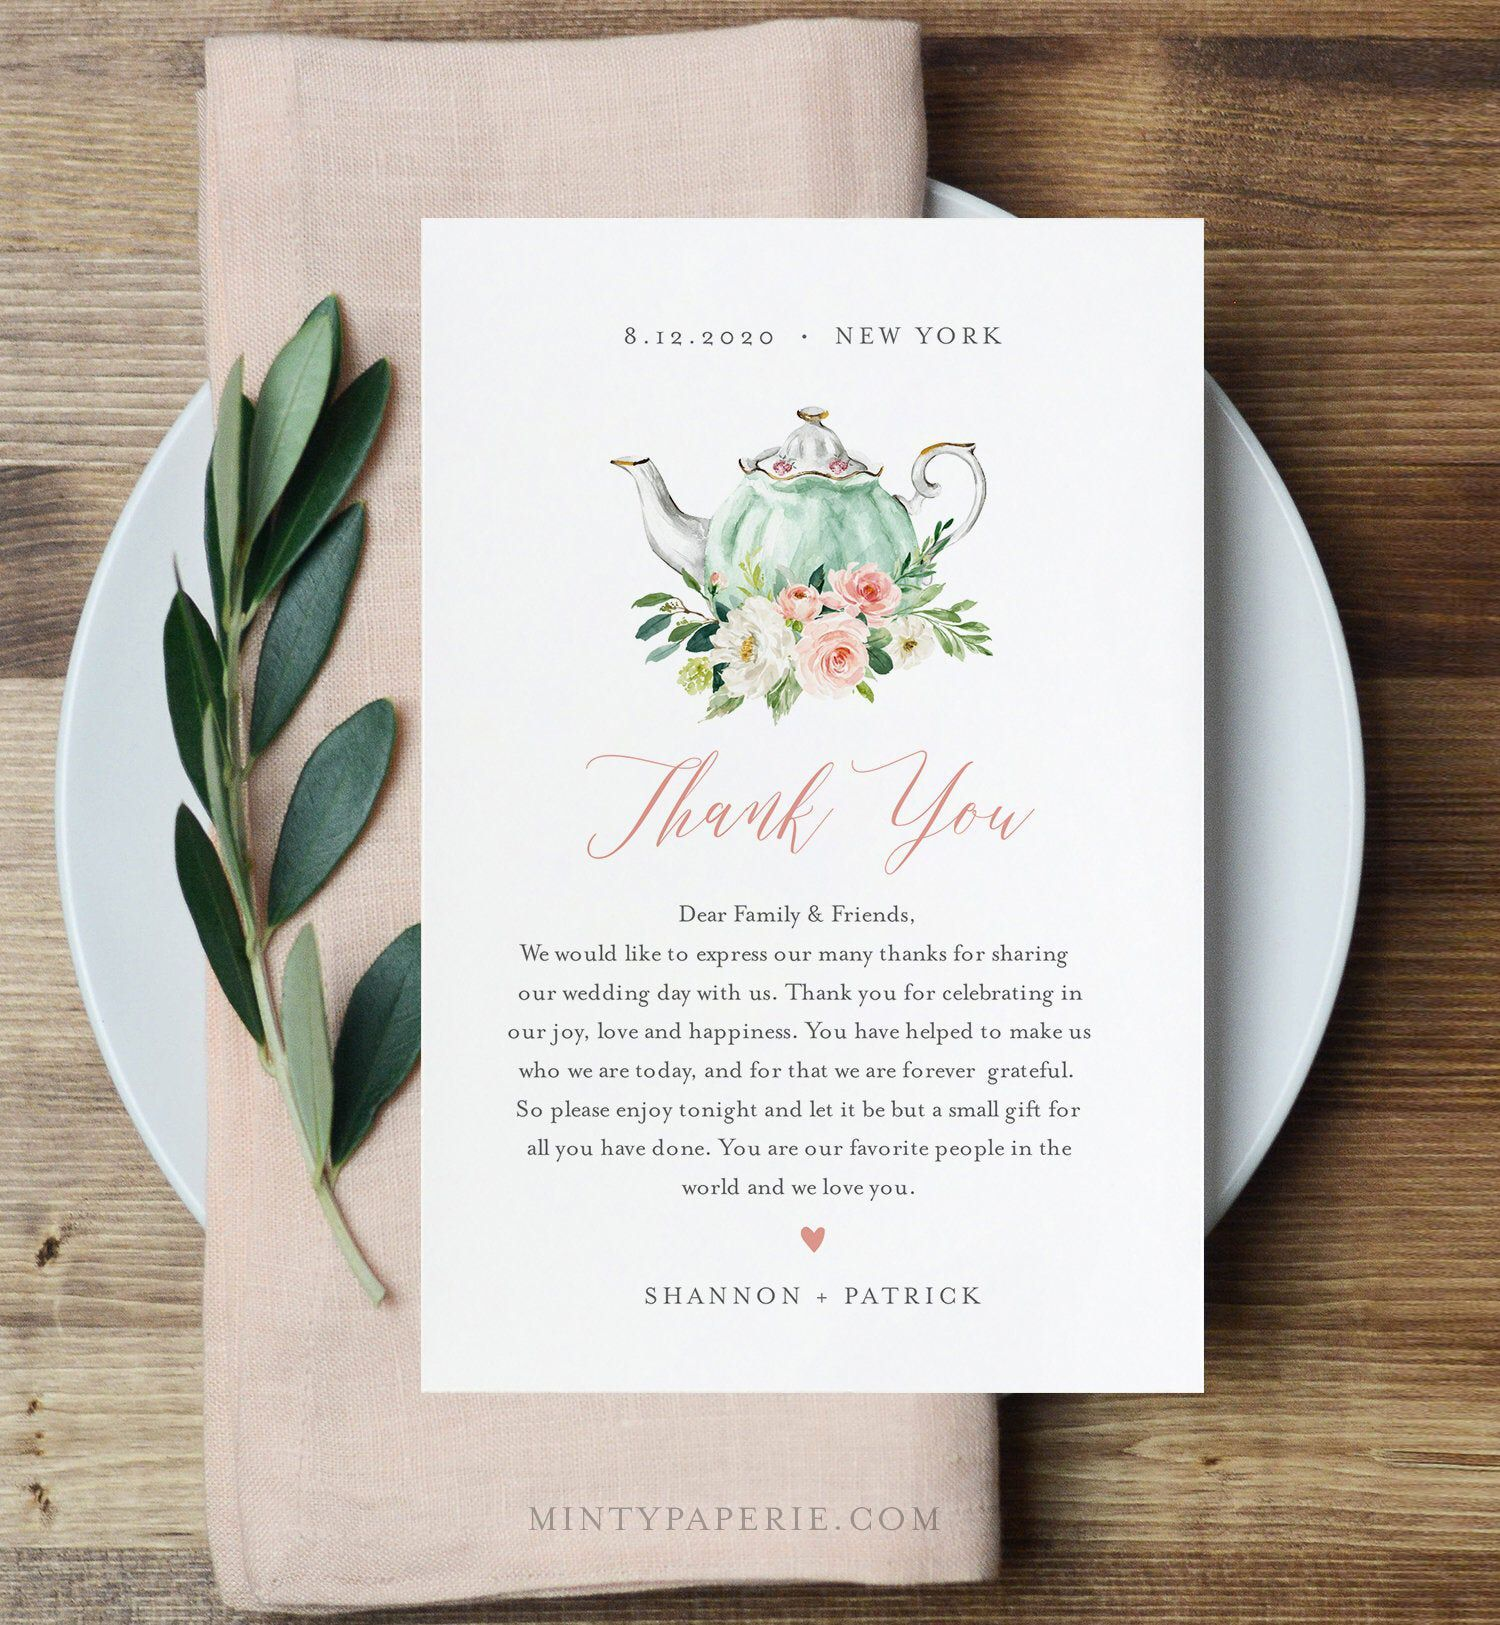 Tea Party Thank You Letter, Napkin Note, Printable Wedding Menu Thank You, Editable Template, INSTANT DOWNLOAD, Templett, 4x6 #085-118TYN#085118tyn #4x6 #download #editable #instant #letter #menü #napkin #note #party #printable #tea #template #templett #wedding